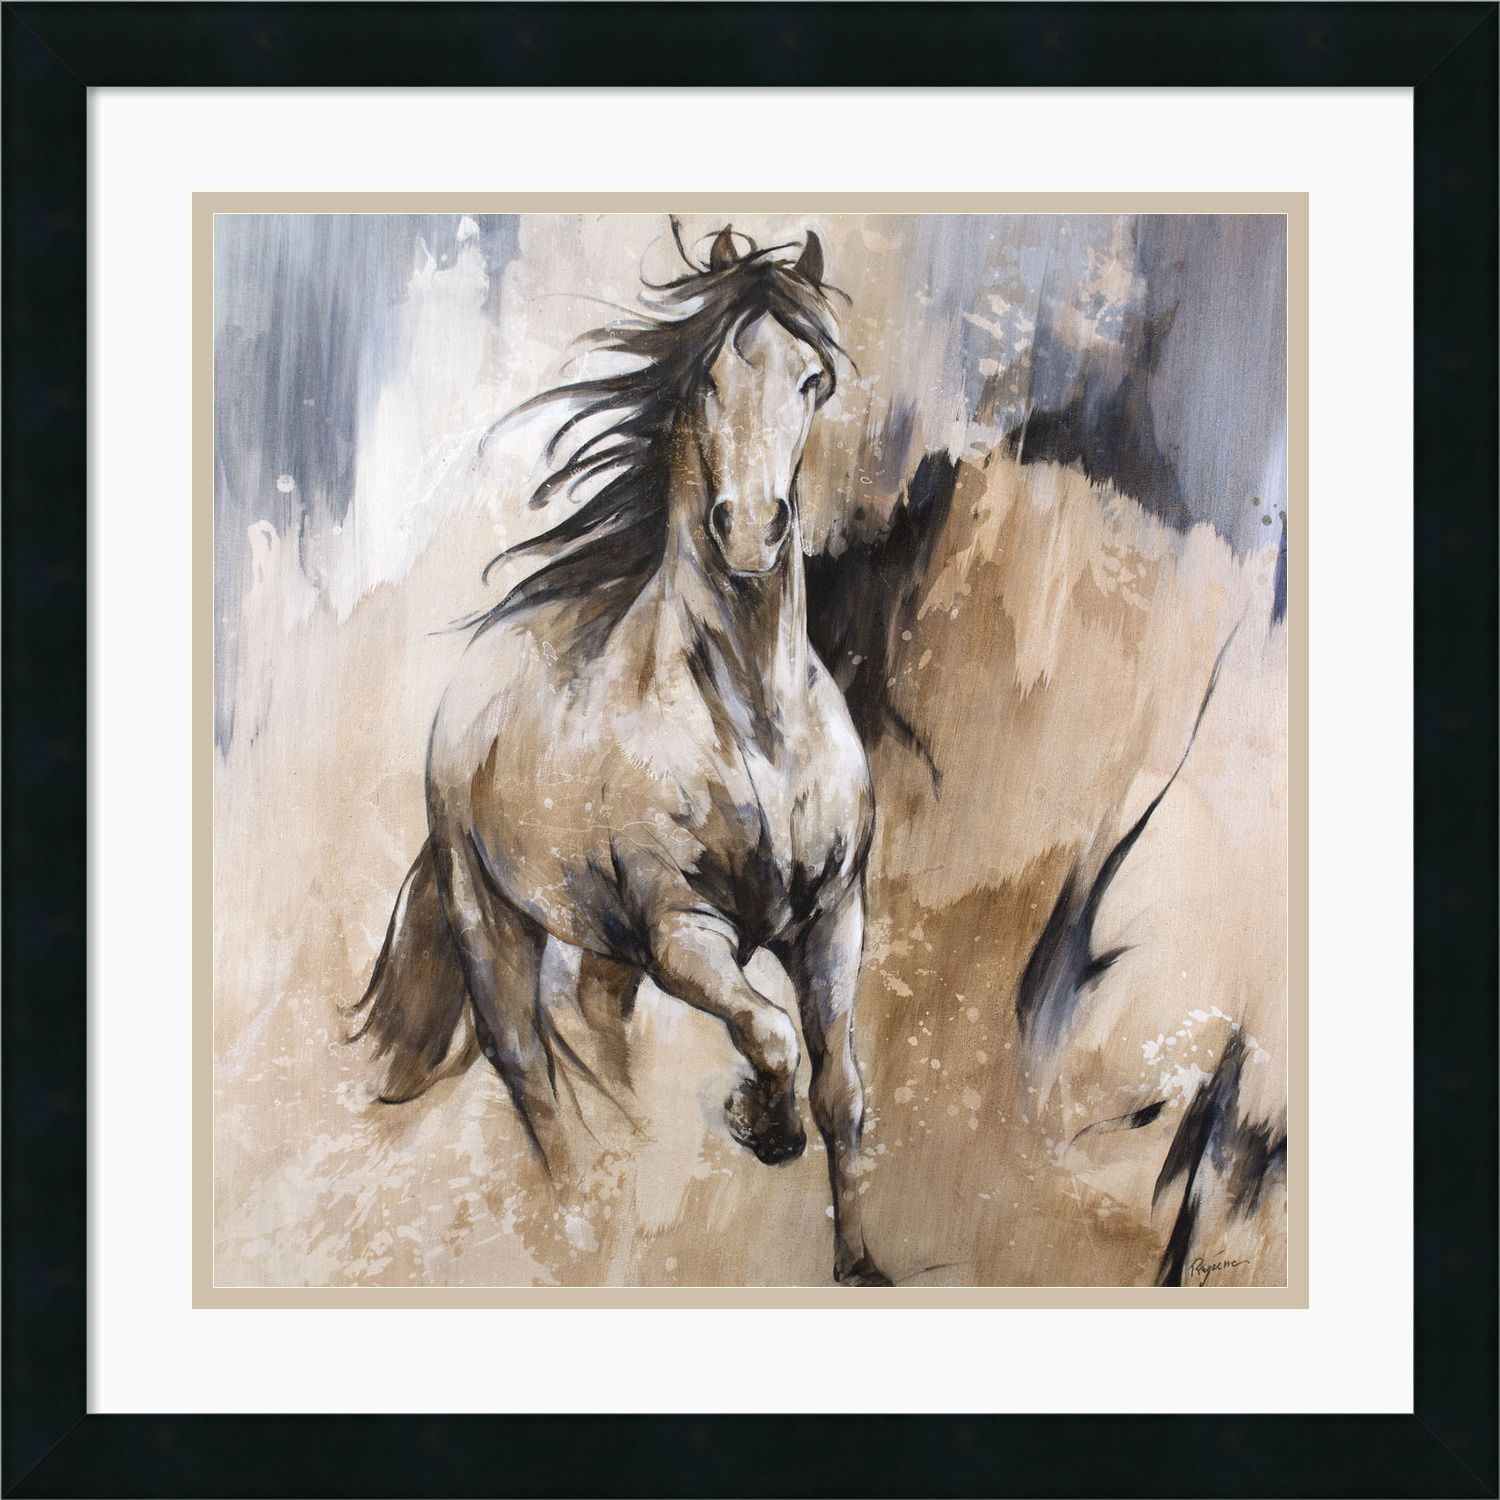 Framed Art Print \'Frison Horse\' by Cyril Reguerre 22 x 22-inch ...